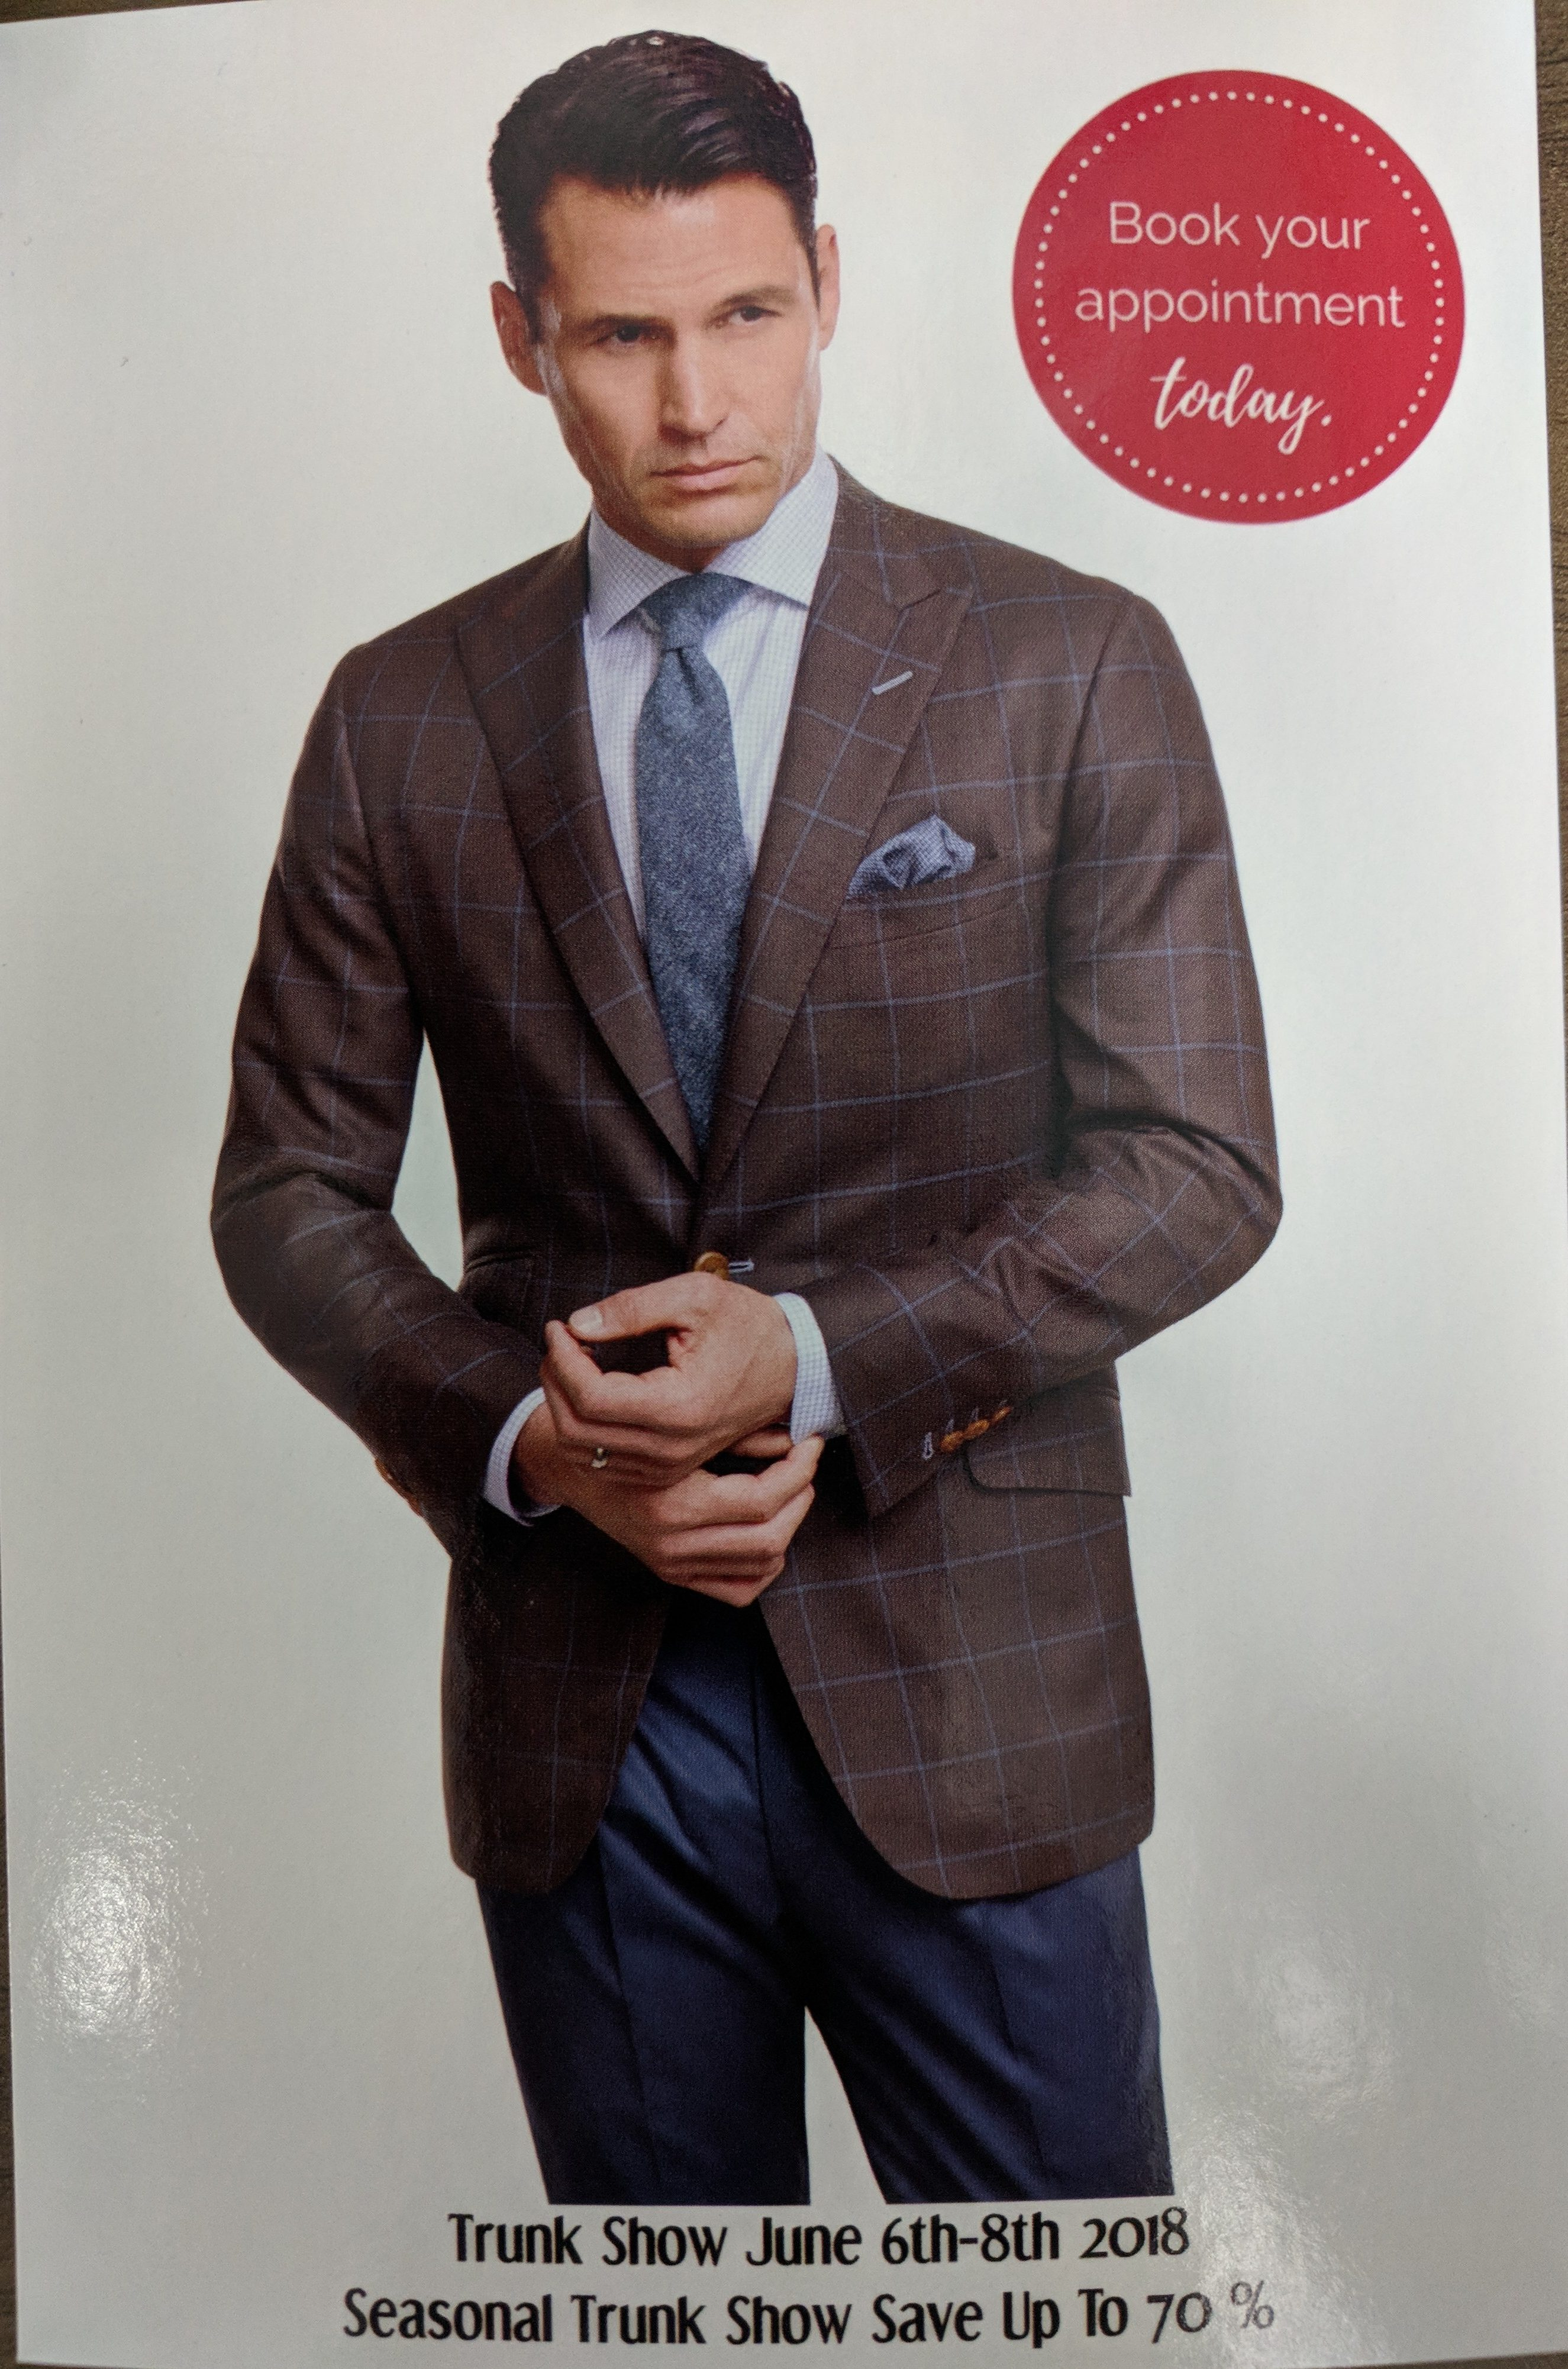 Tom James Trunk Show Tampa Bay Mens Suits Shirts Ties Sale Jacket